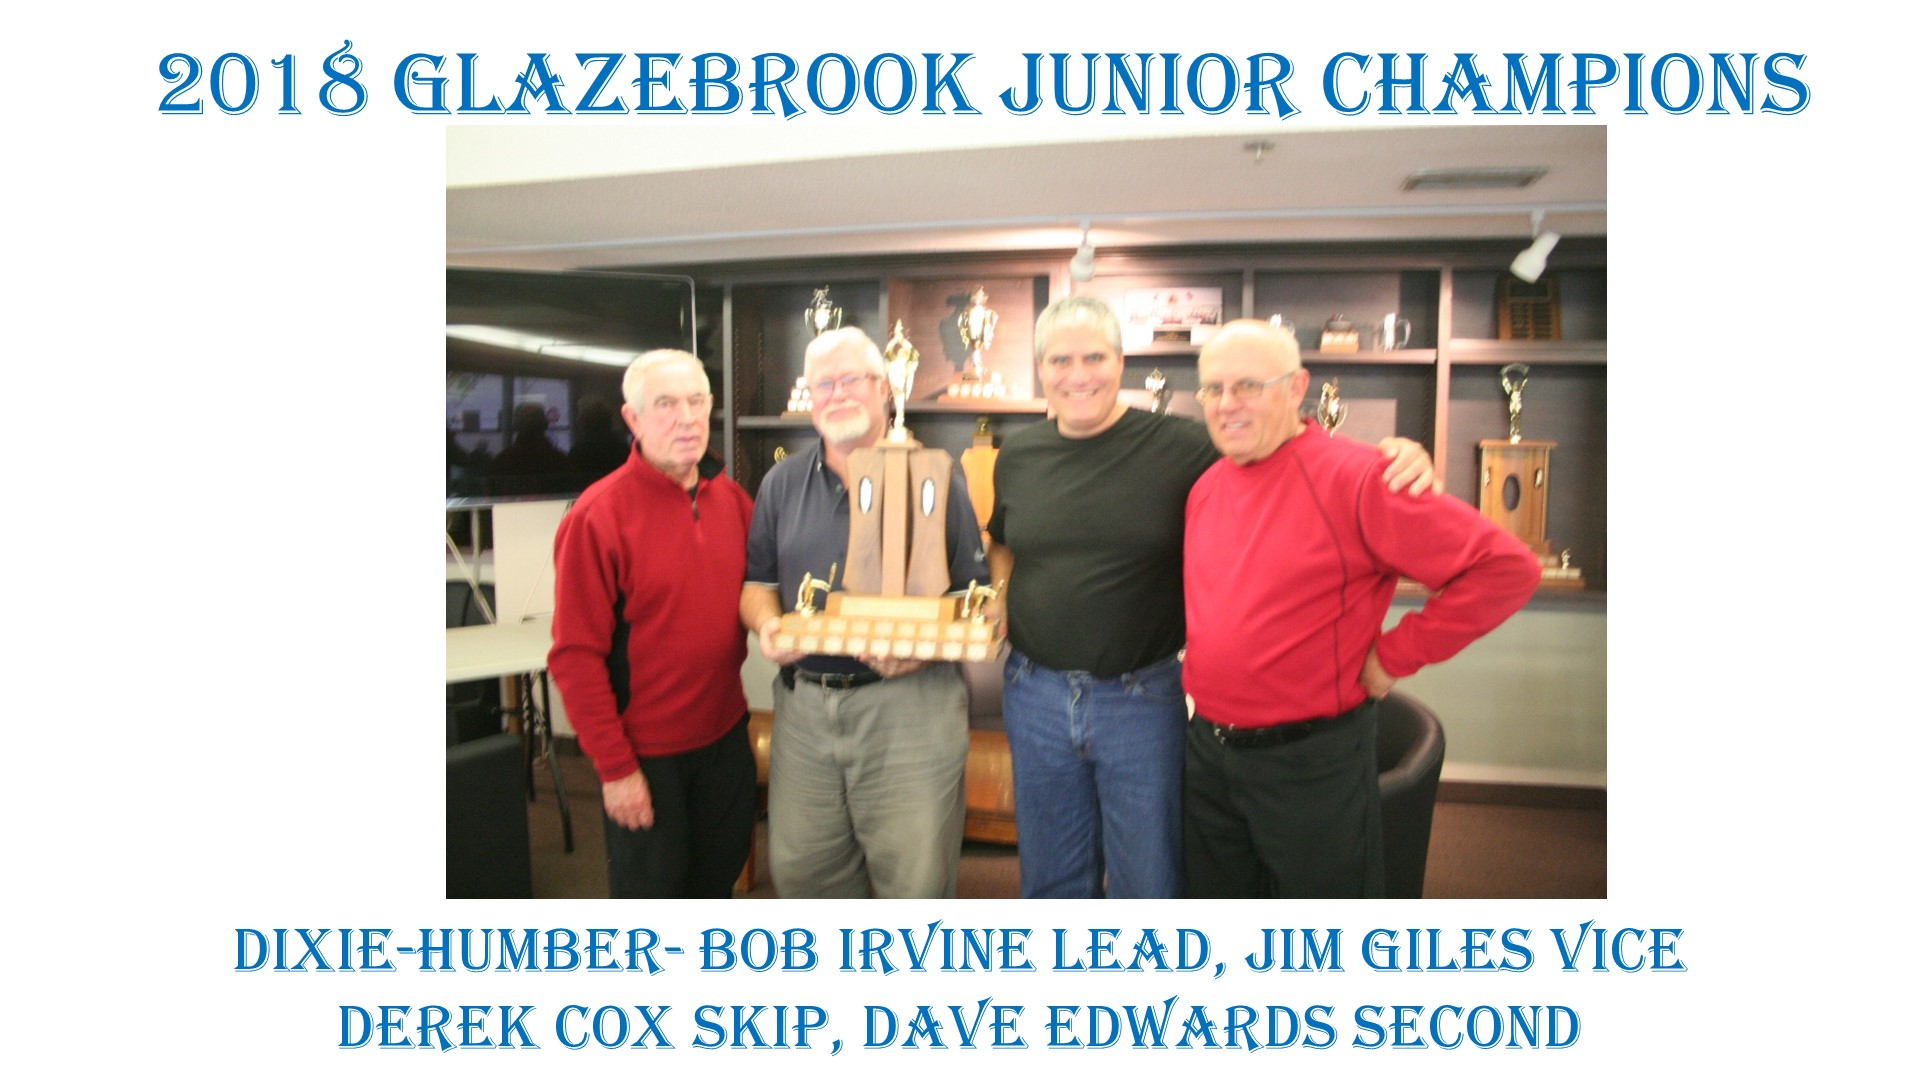 2018 Glazebrook Junior Winners with names